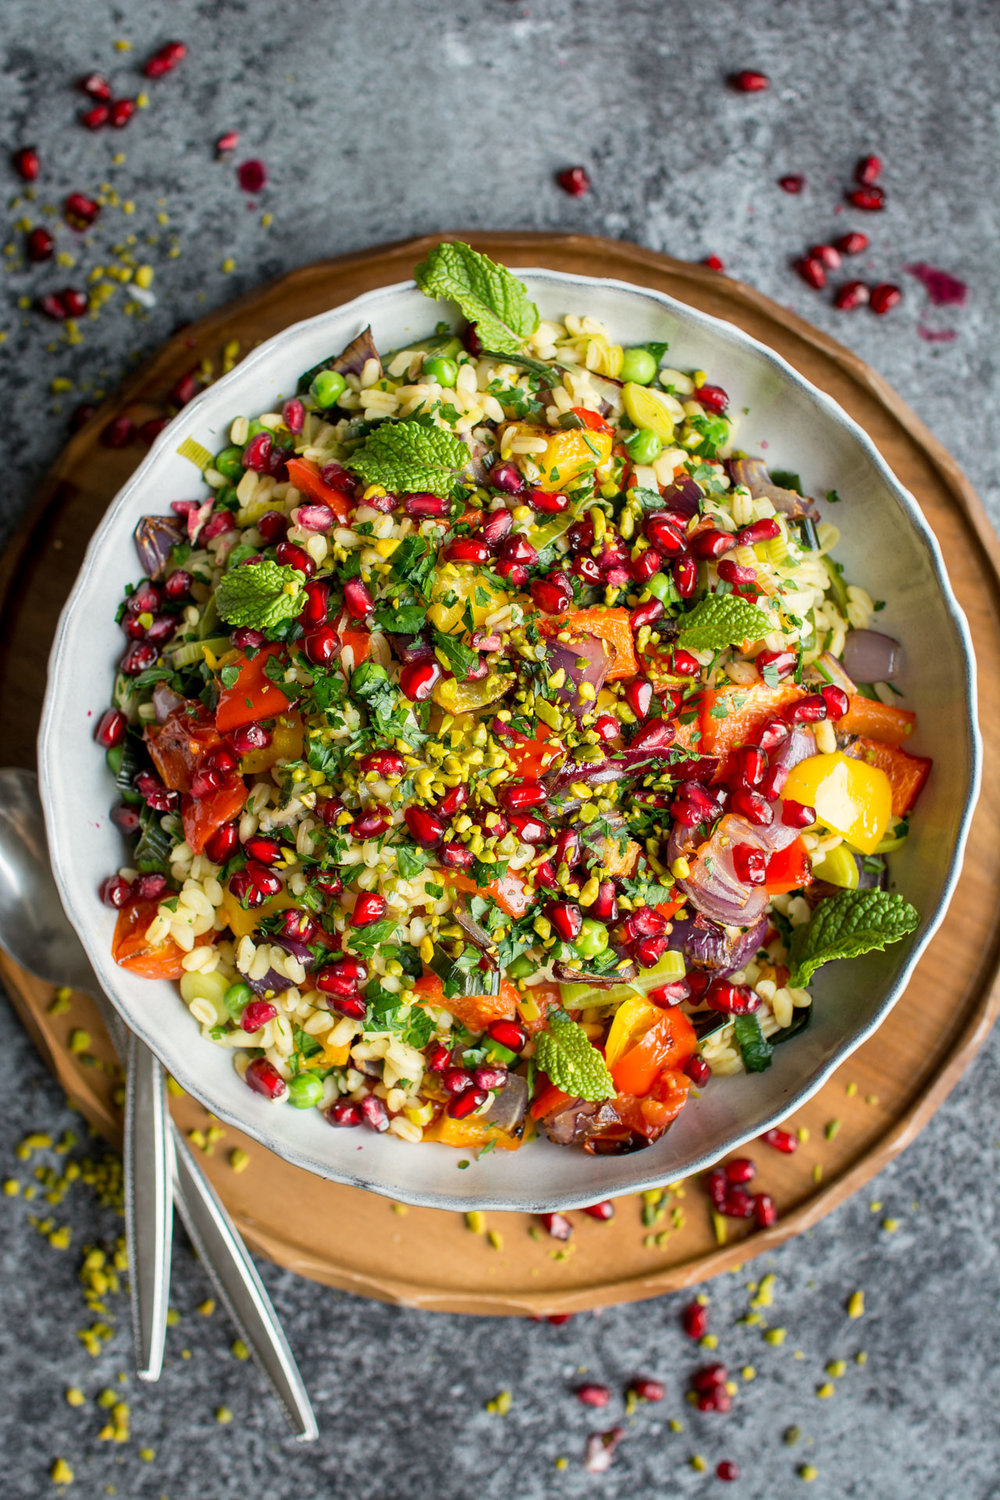 Wheat Berry Risotto with Winter Roasted Vegetables from Lauren Caris Cooks | A roundup from Shiny Happy Bright